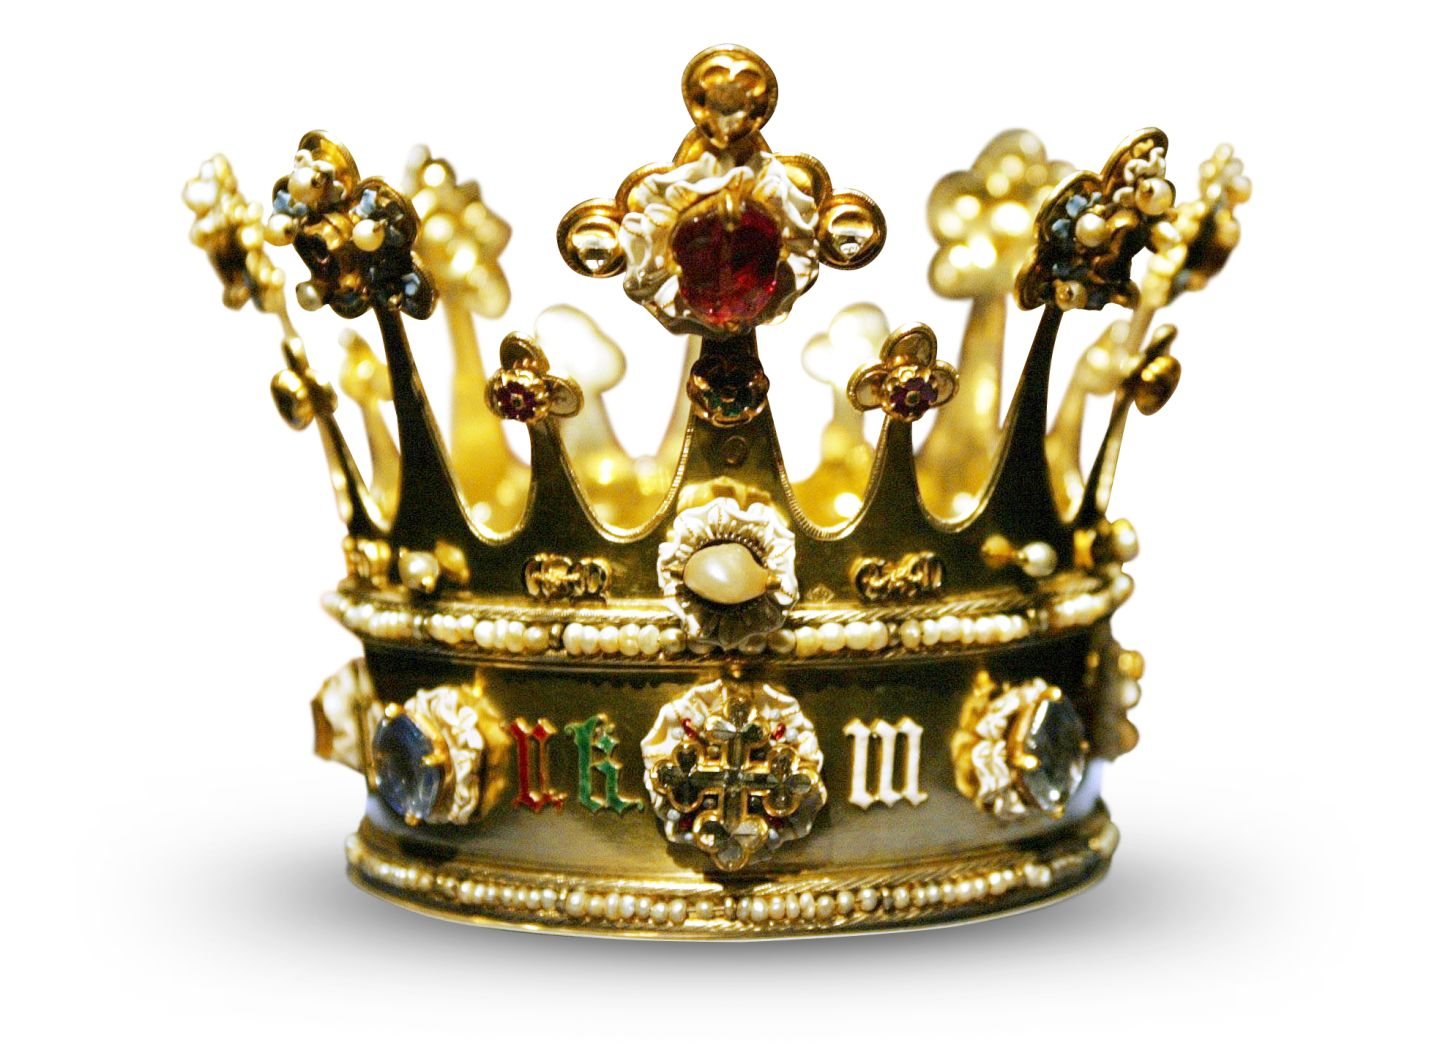 Crown of Margaret of York, made in London before 1461